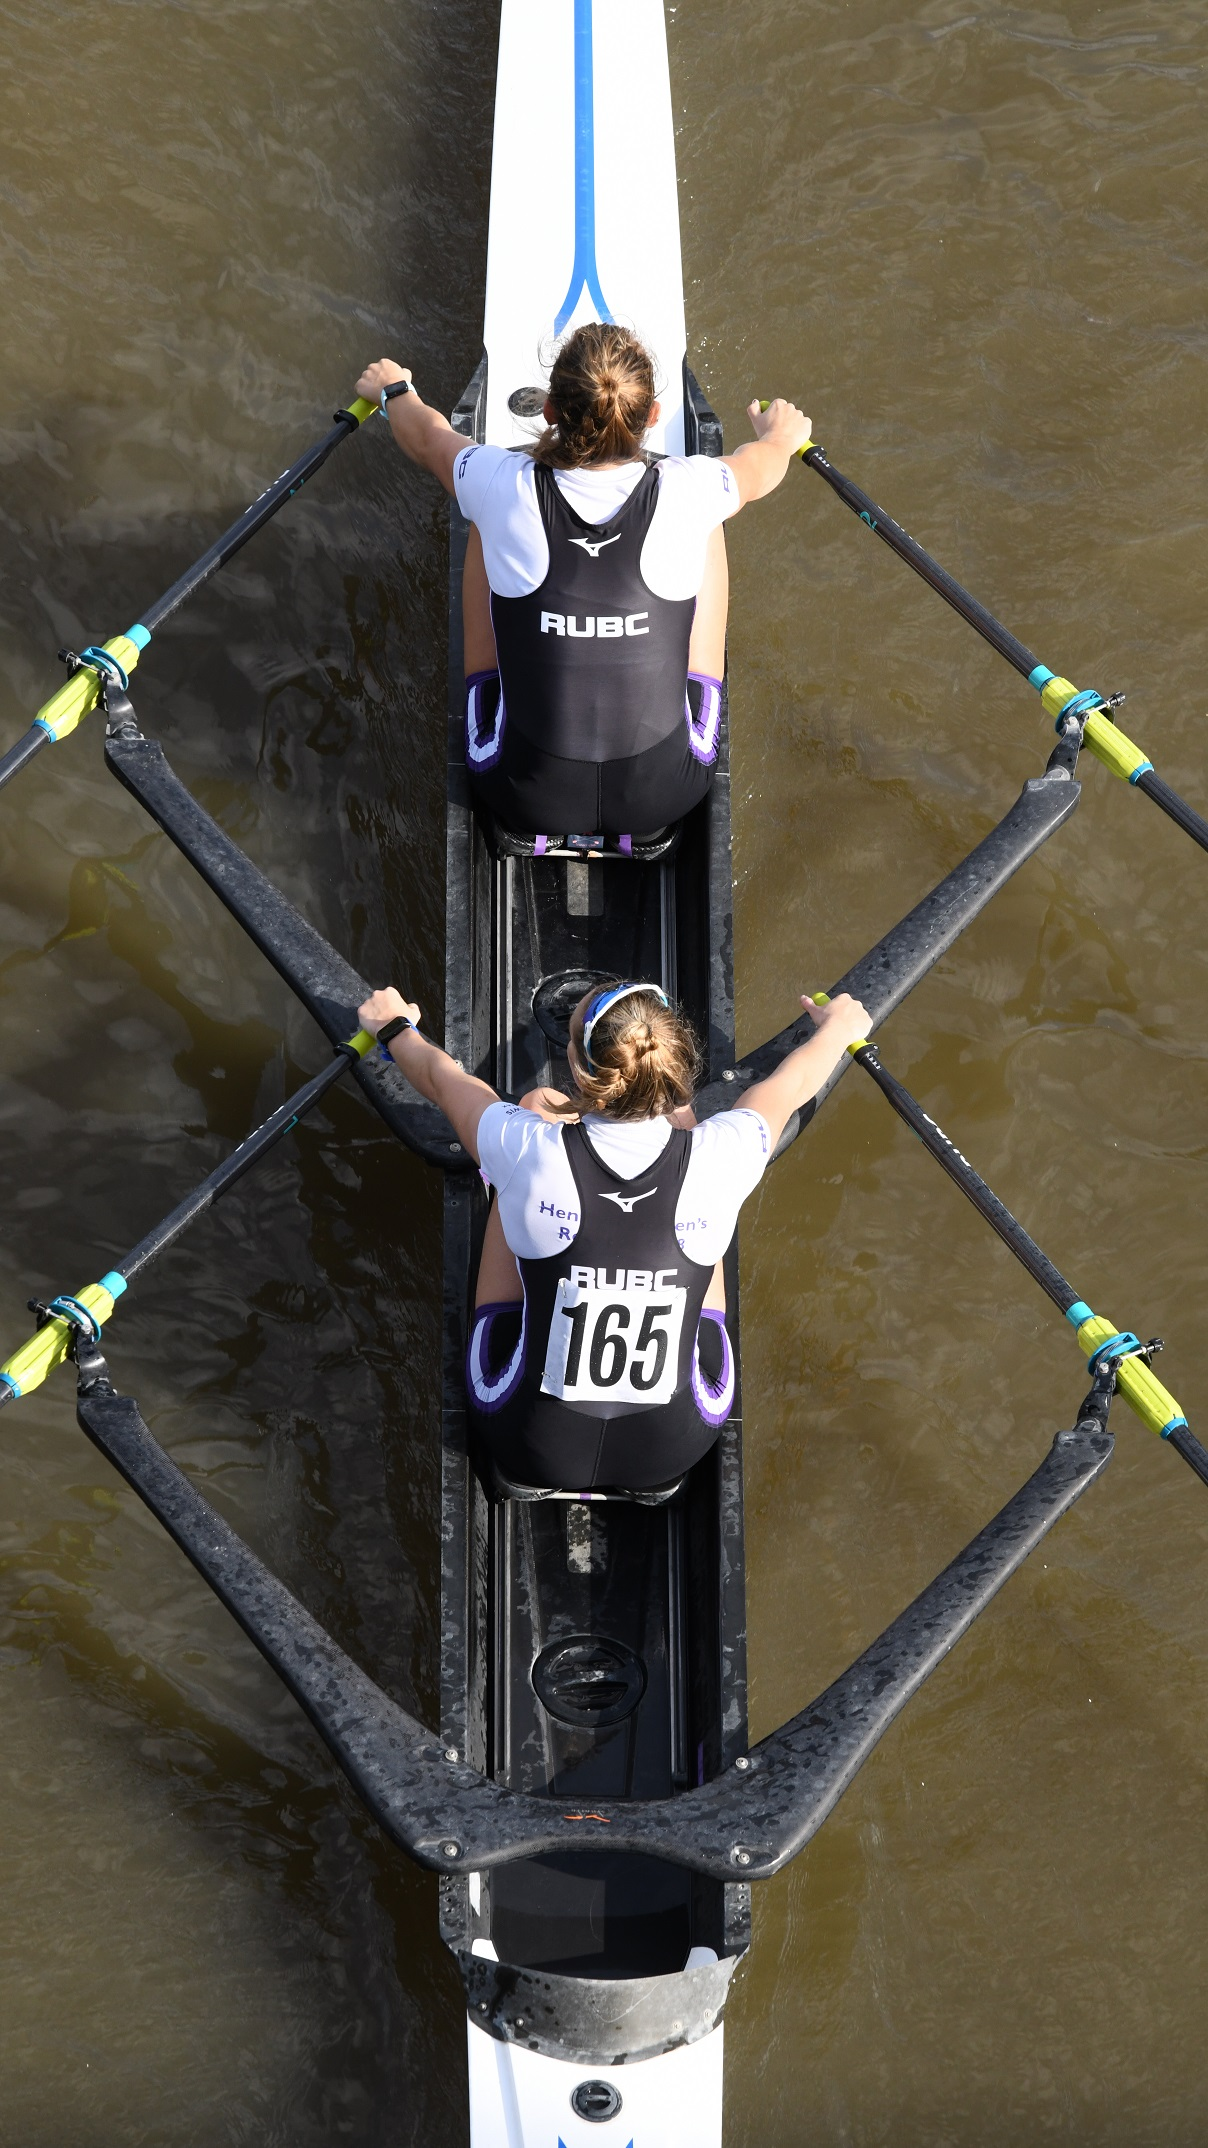 Rachel & Sophie (thanks to Chris from Ketsugi Rowing for the picture)